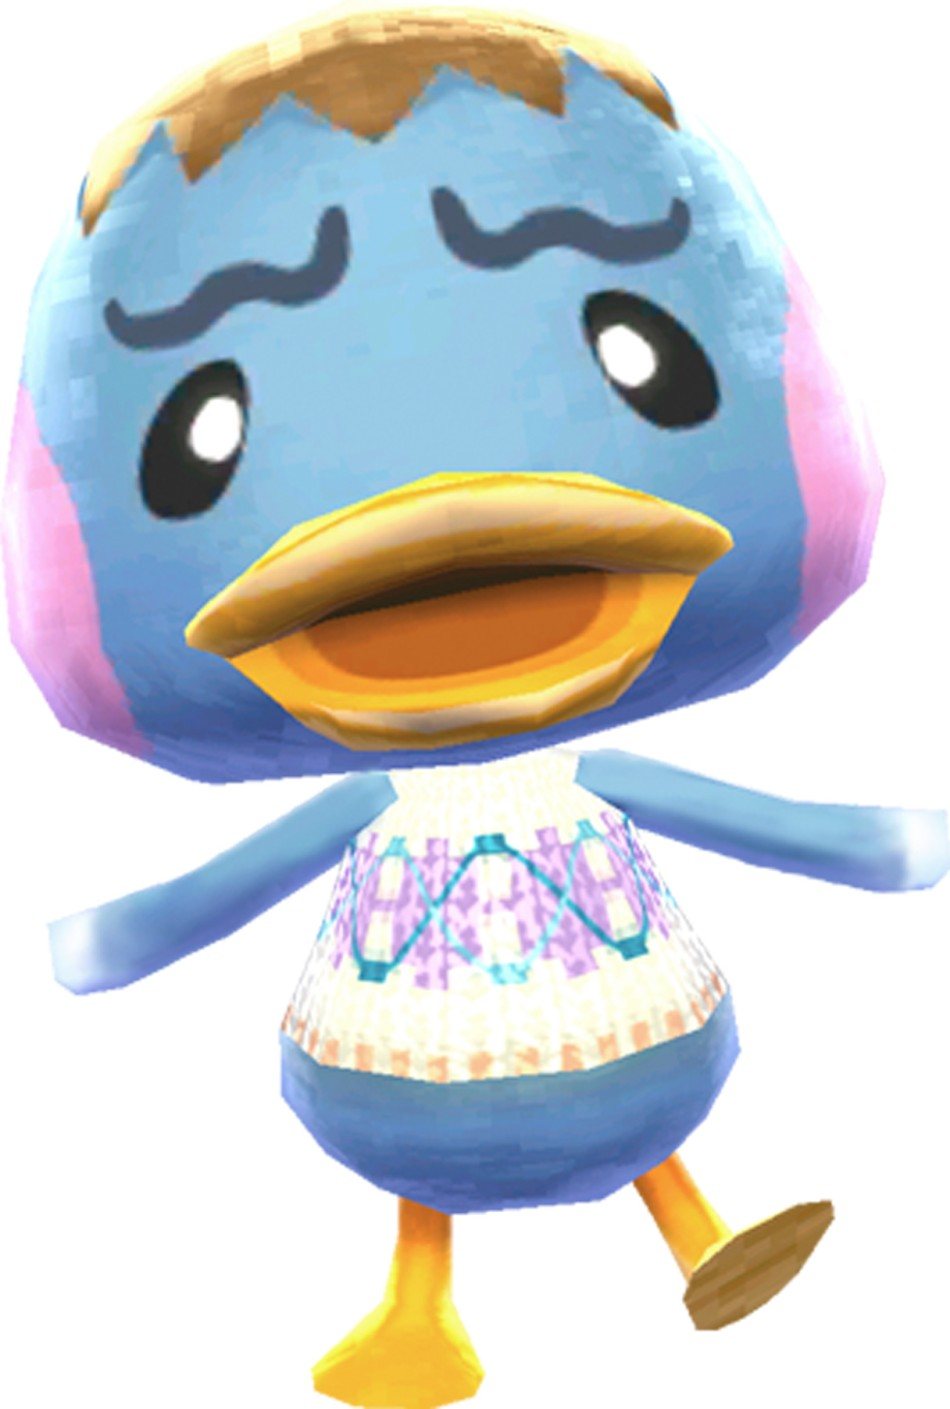 Learn more about the development of the Animal Crossing series in